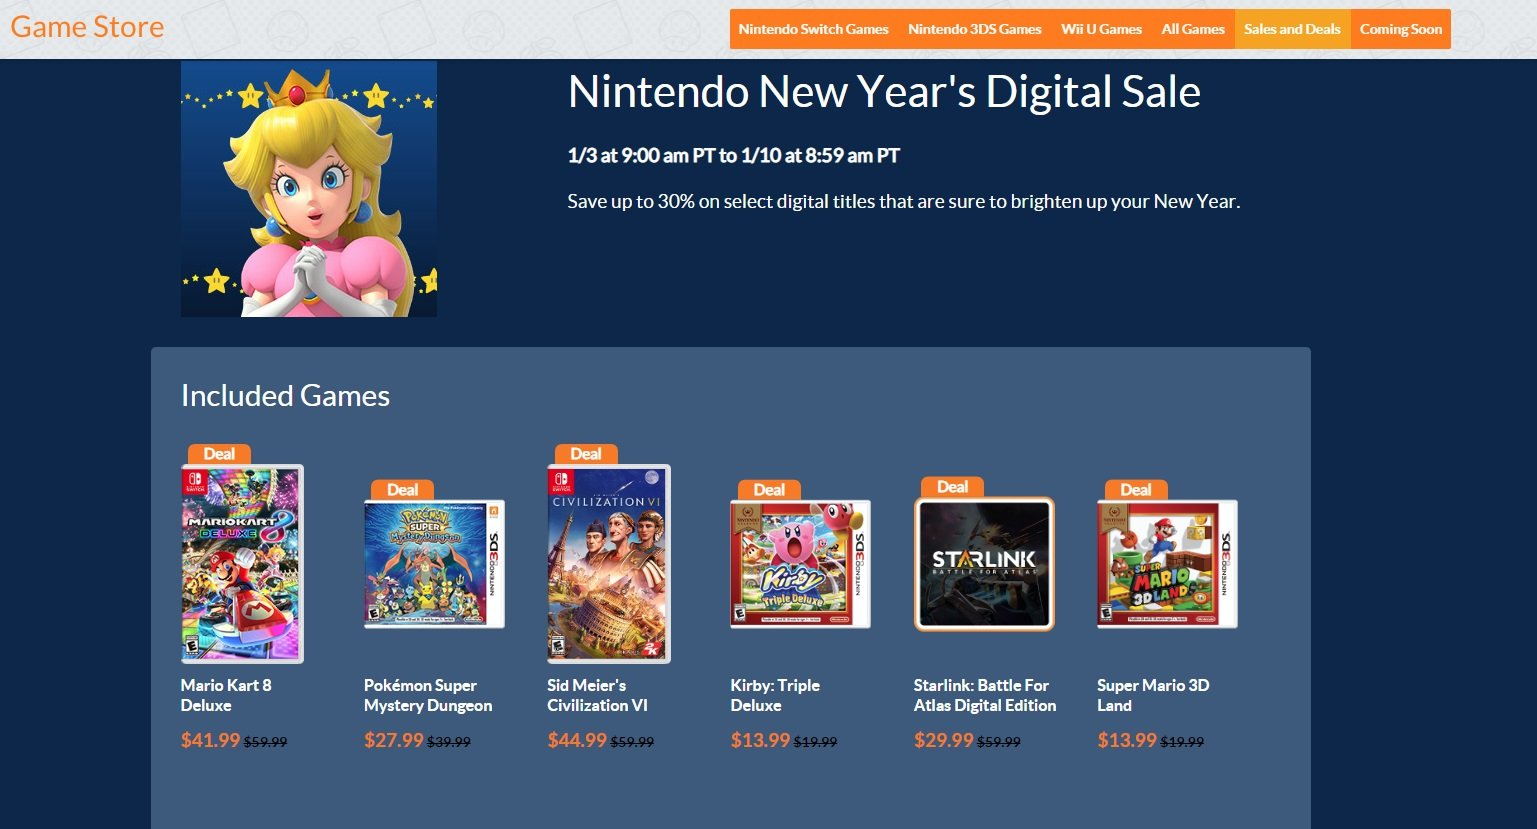 Deals available as part of Nintendo's New Year's Digital Sale